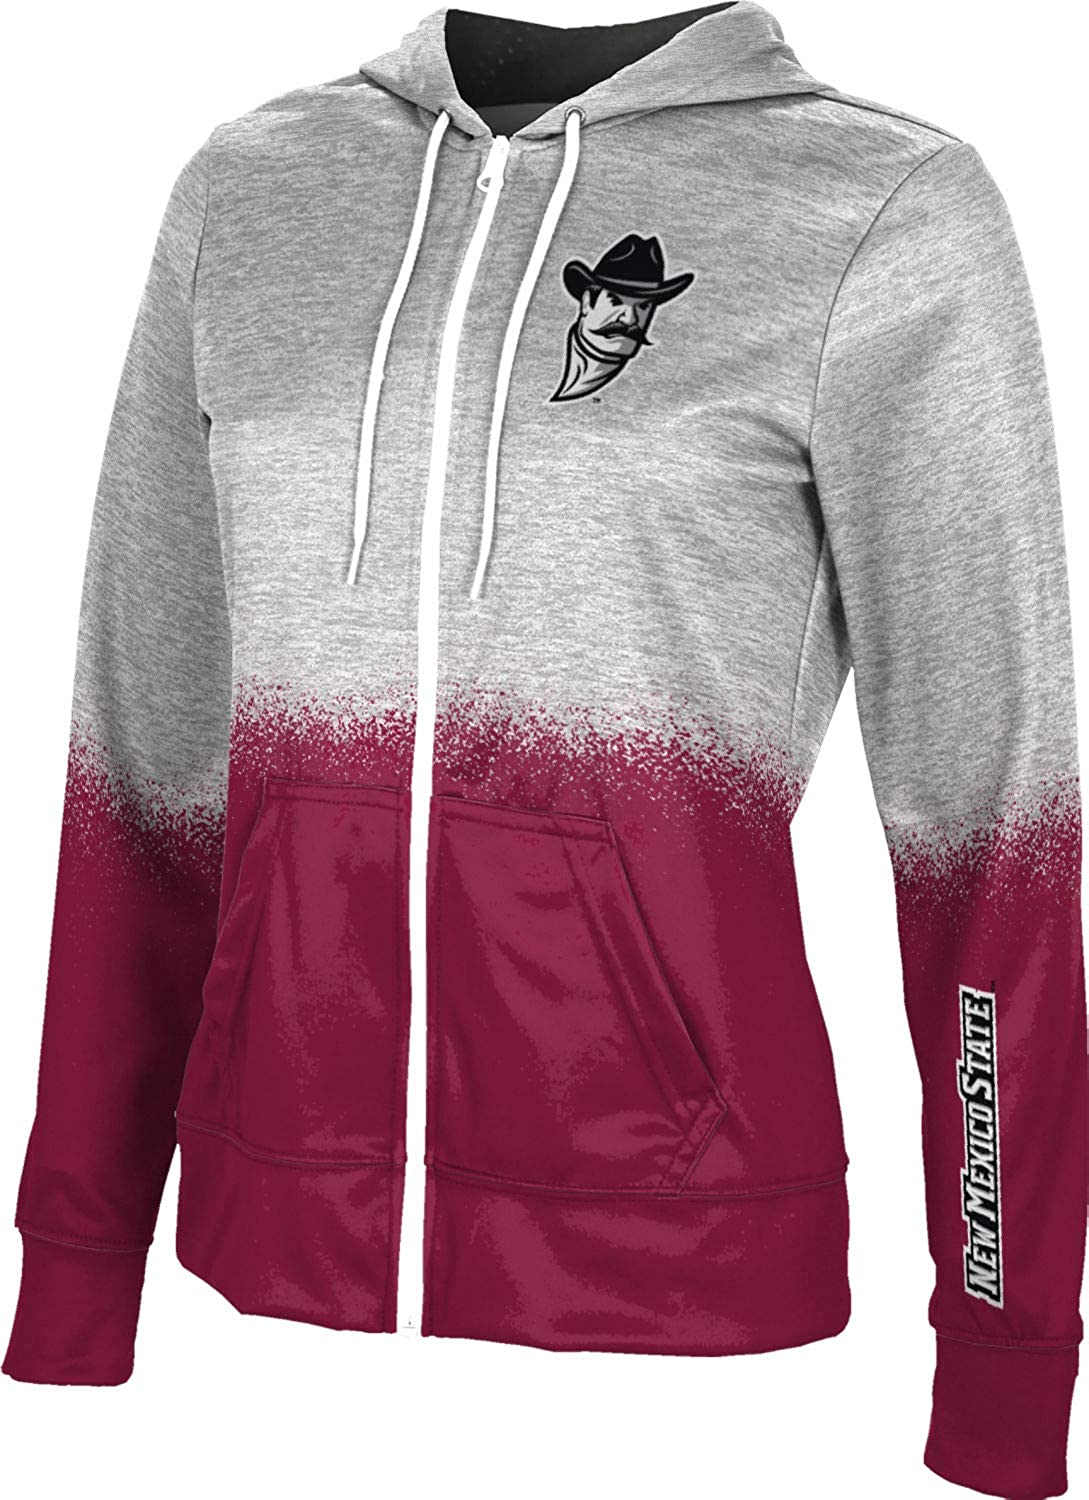 ProSphere Fashion New Mexico State University Zipper Girls' Lowest price challenge Hoodie Scho